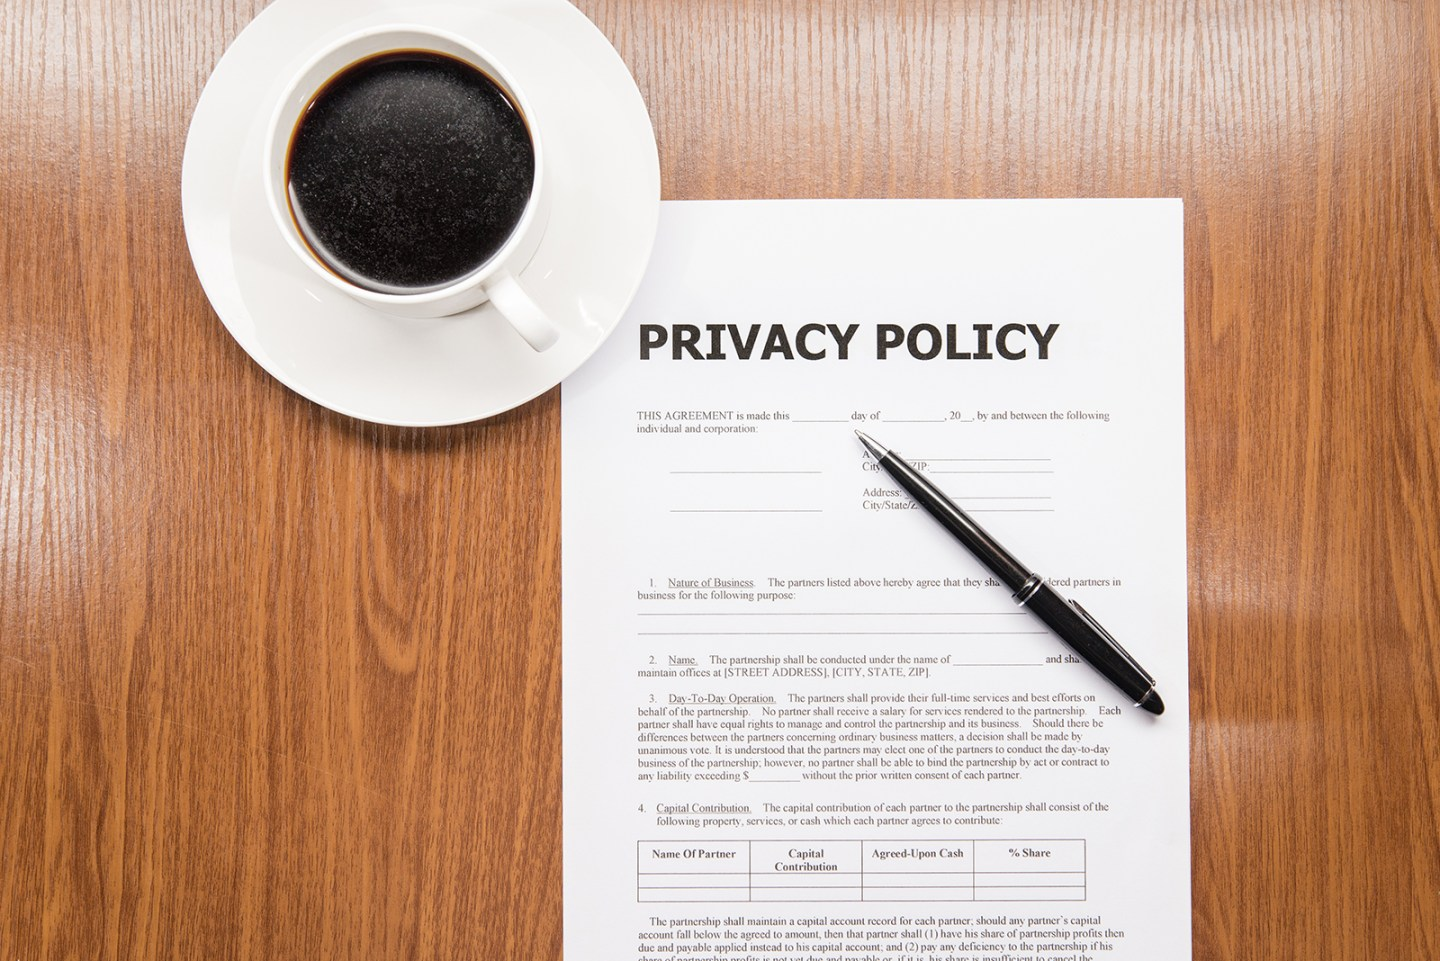 A paper Privacy Policy document sits on a wooden desk with a pen on top of it. Just above the sheet of paper is a cup of coffee.